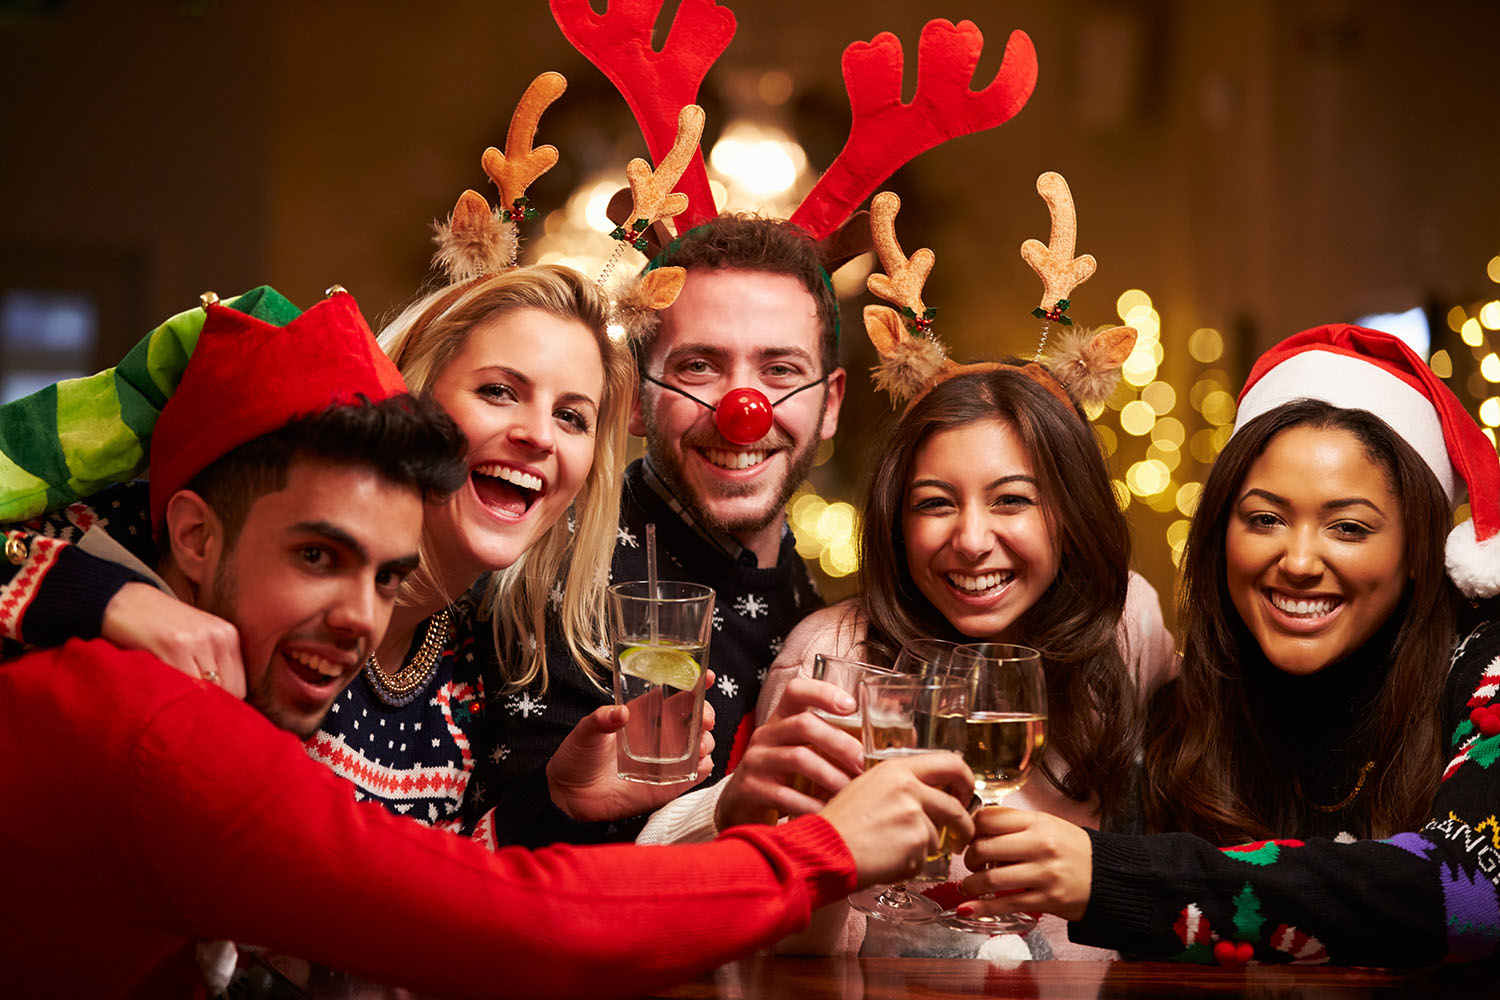 Best Christmas Party Fun Games